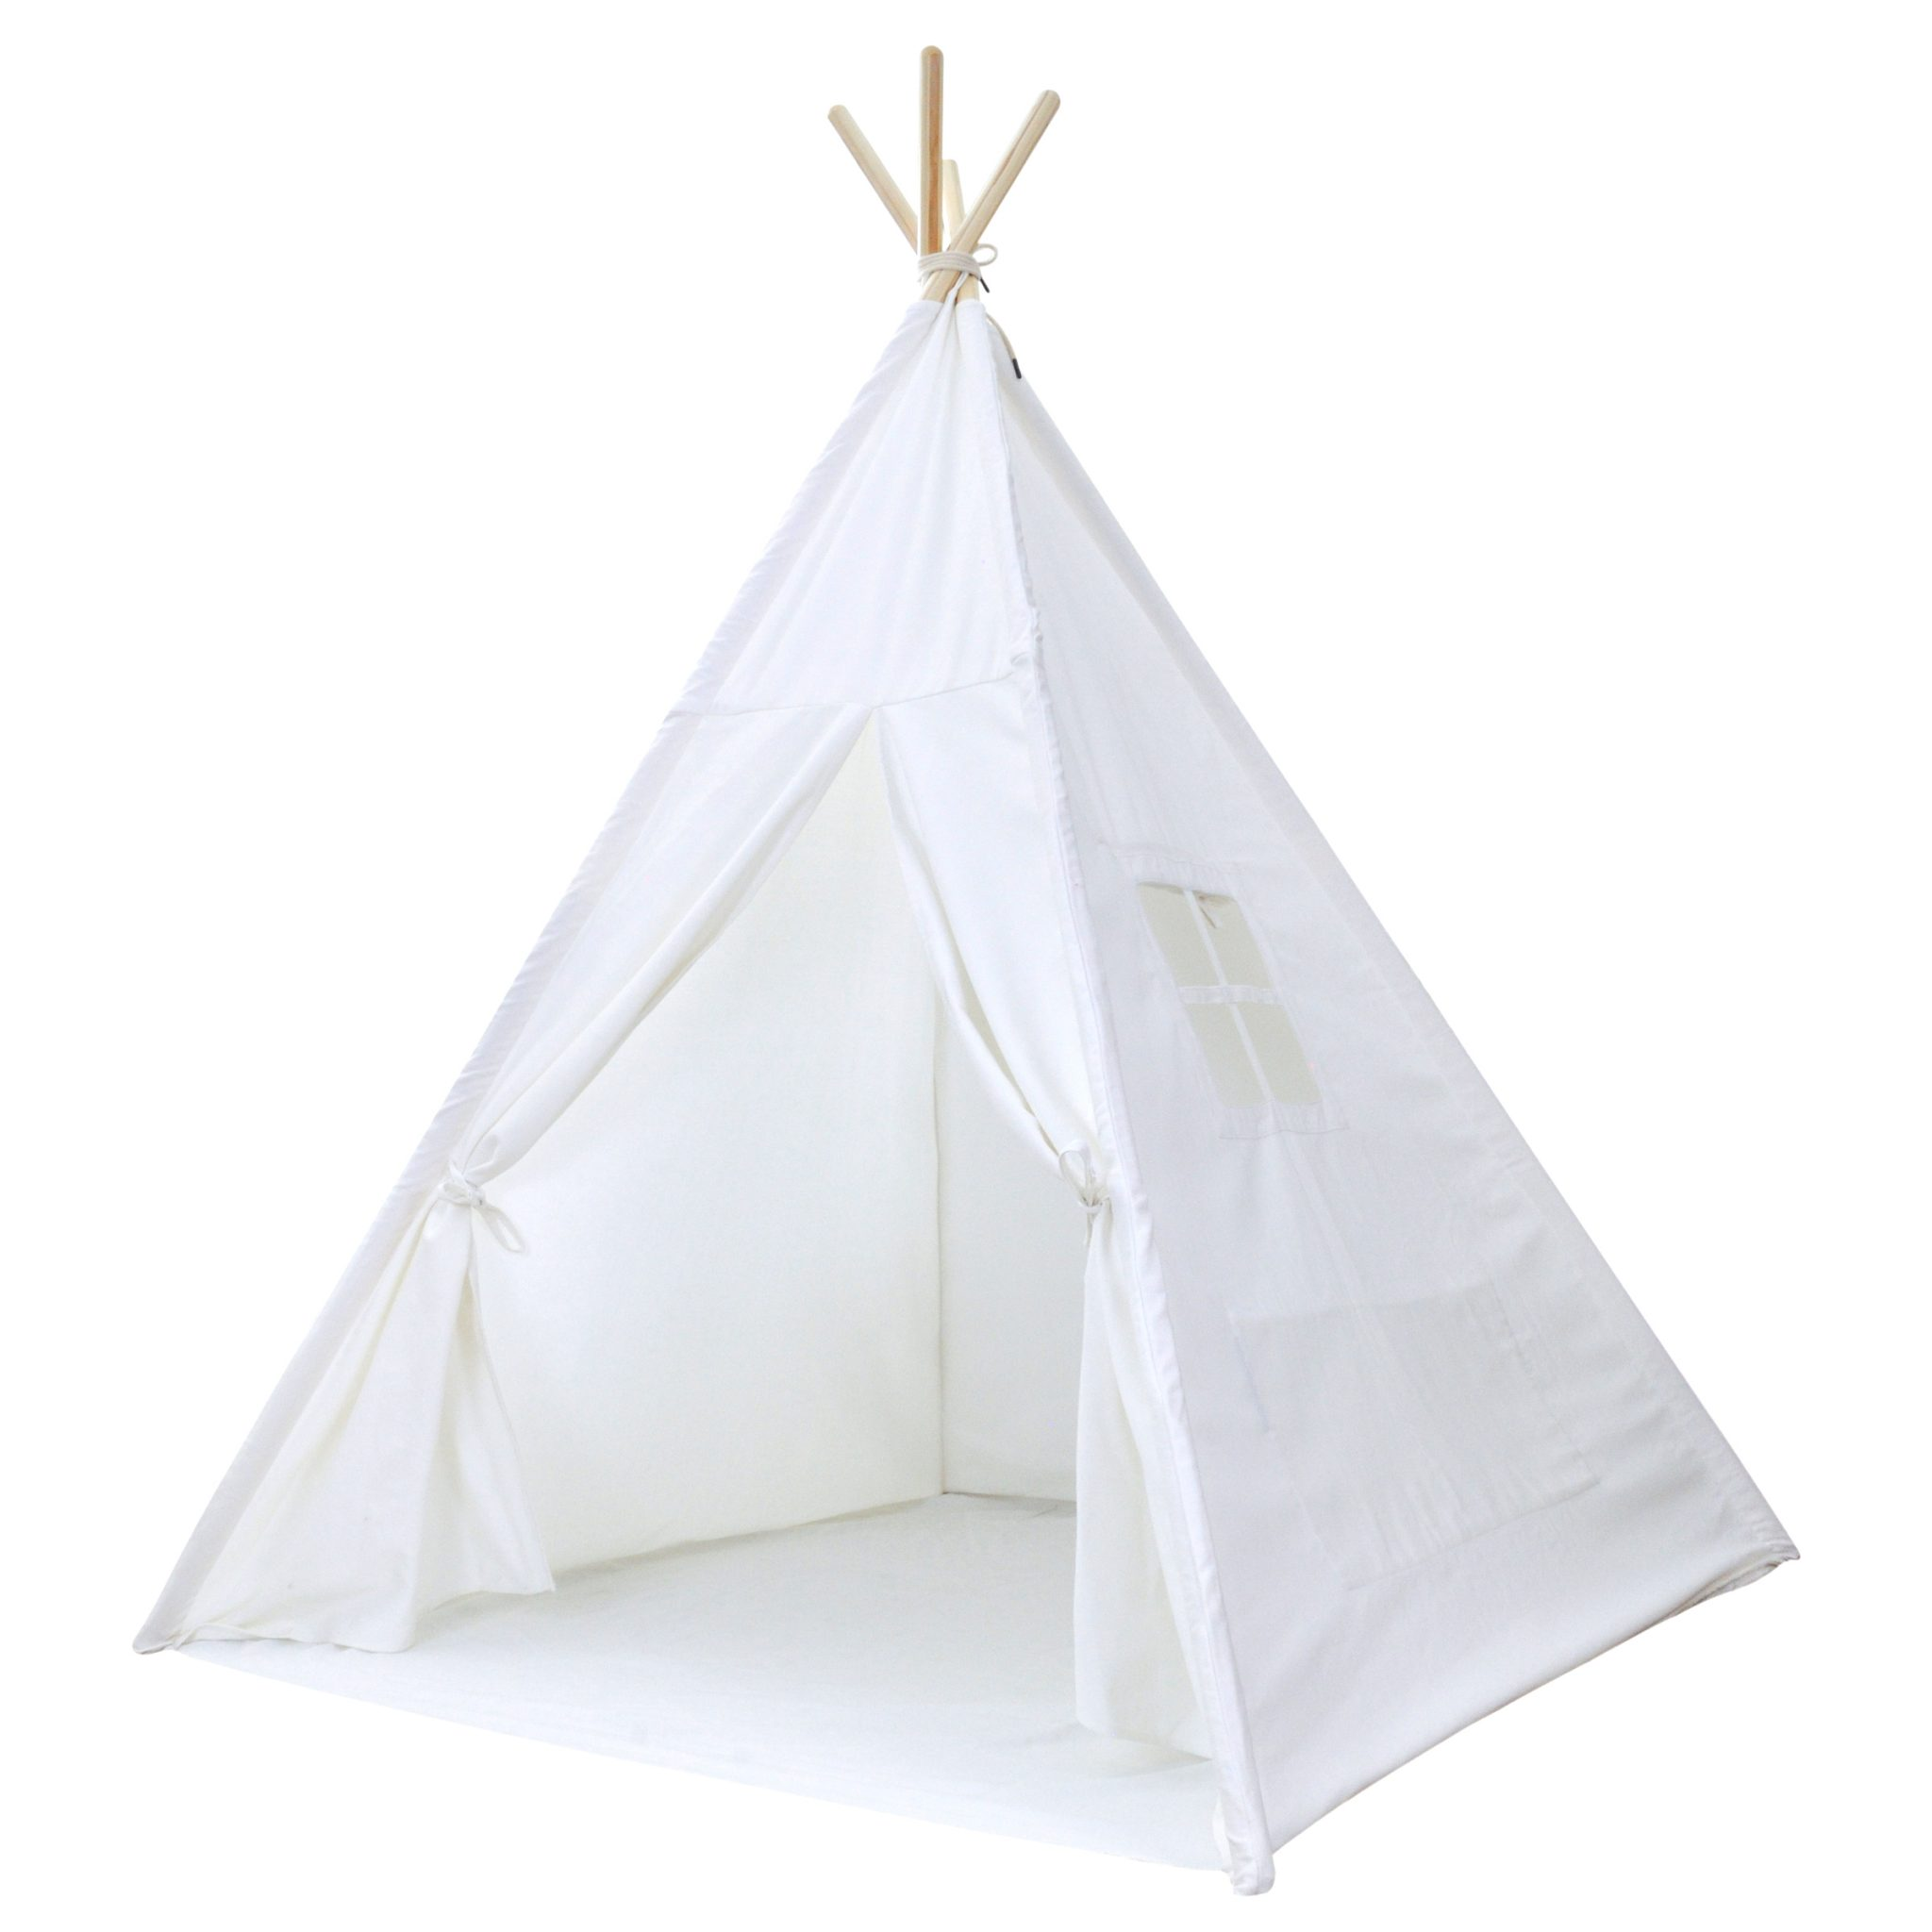 Teepee Kids Portable Kids Canvas Teepee Tent With Carrying Case White Cotton Canvas